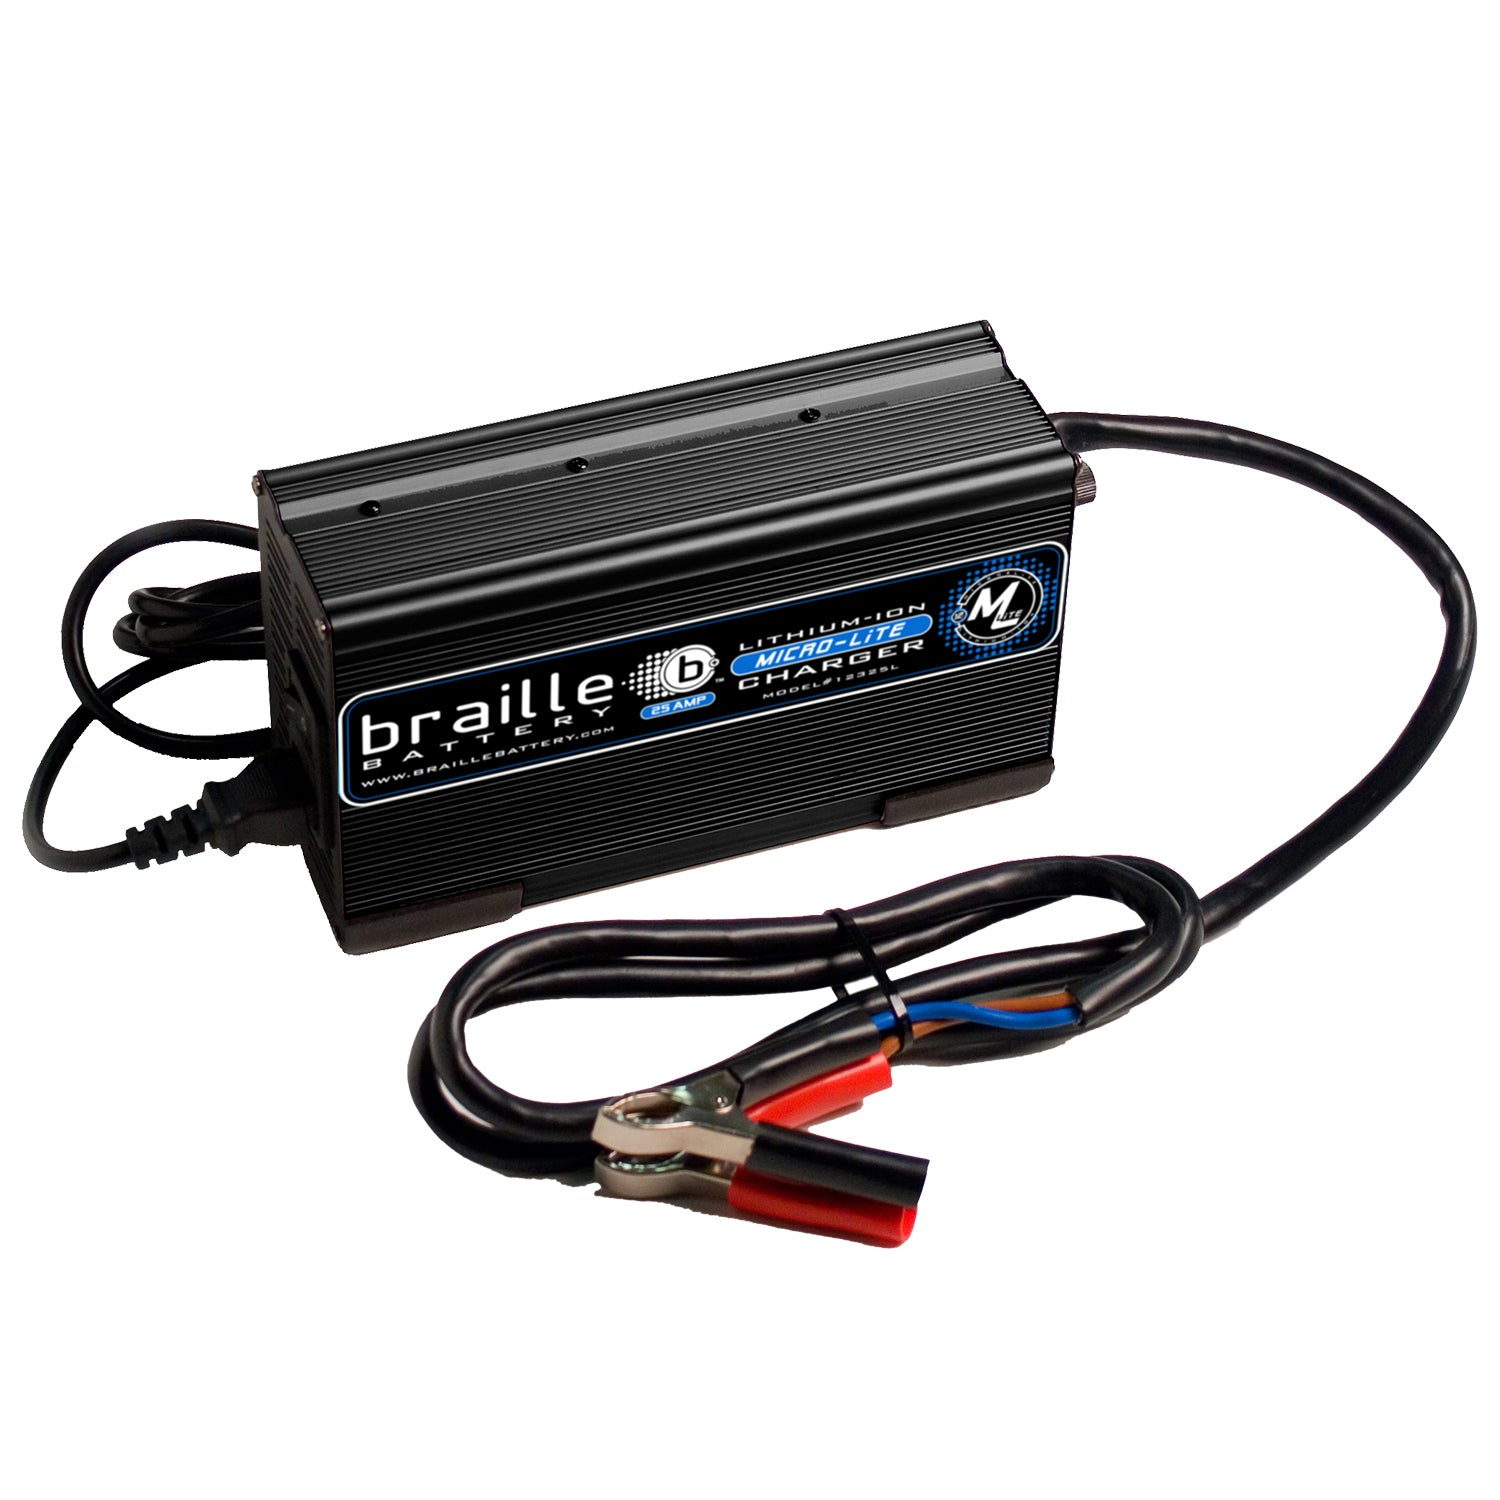 12325L - Braille 12 volt 25 amp lithium rapid charger